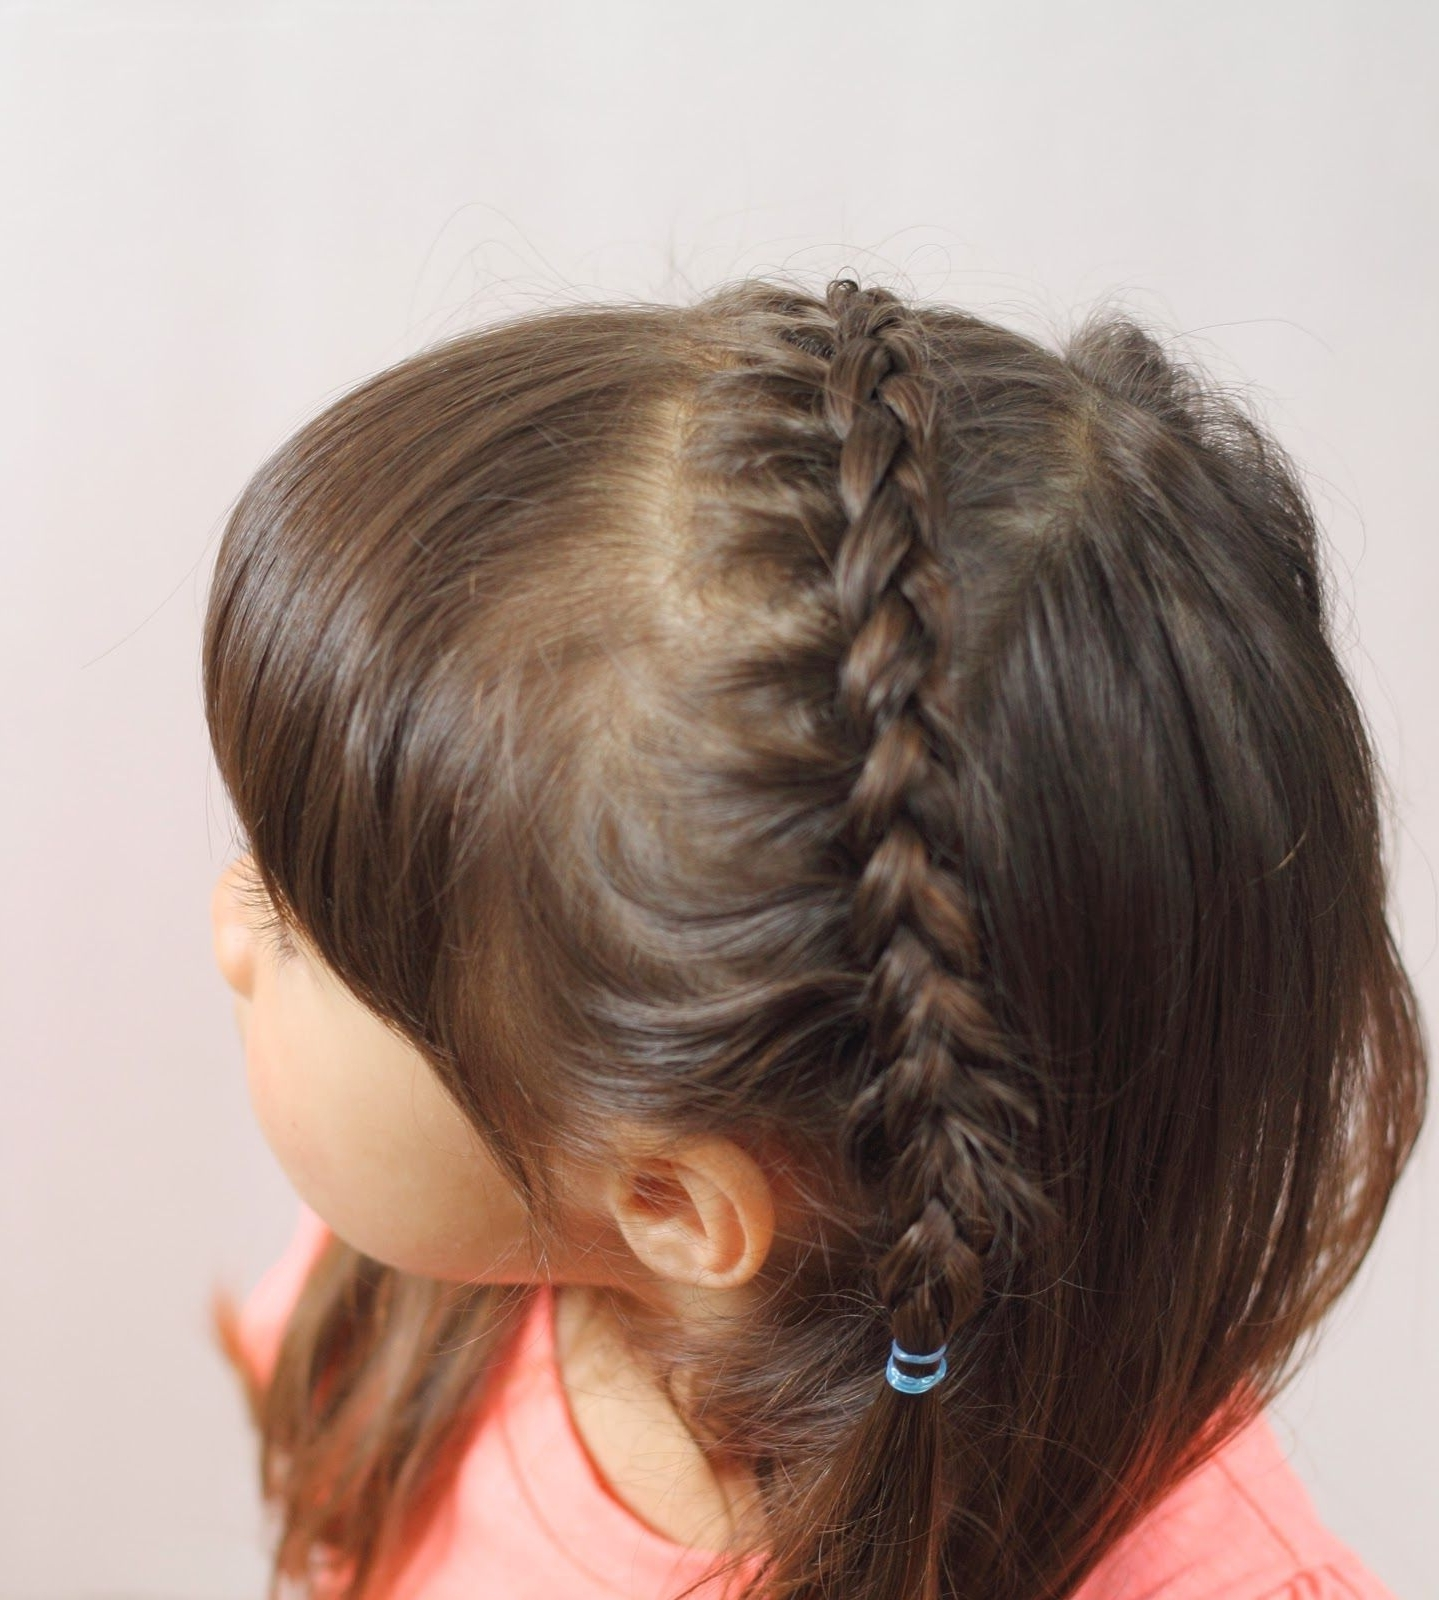 16 Toddler Hair Styles To Mix Up The Pony Tail And Simple Braids Regarding 2017 Dutch Inspired Pony Hairstyles (View 2 of 20)